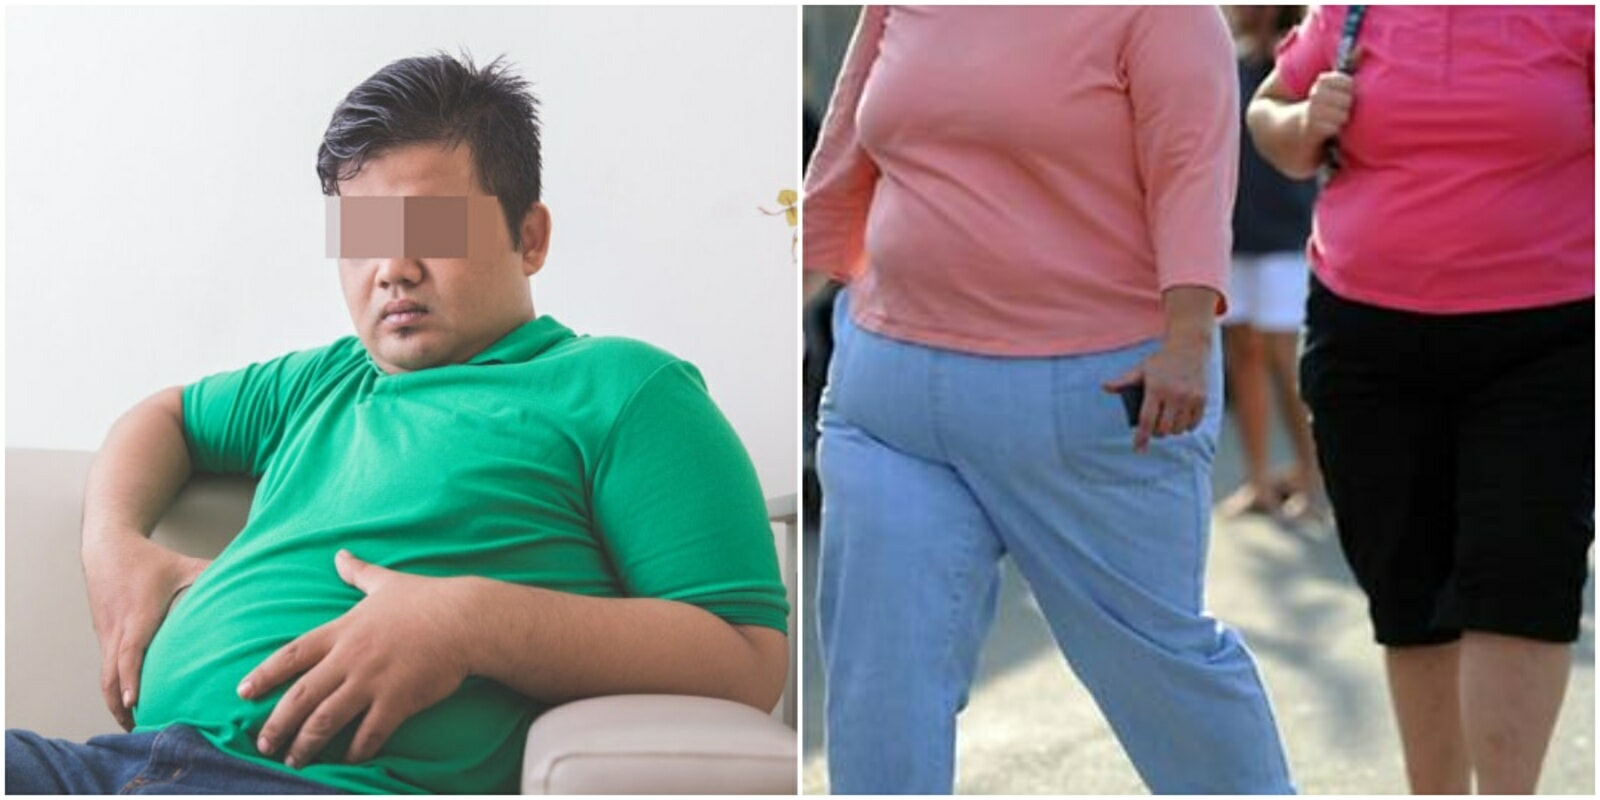 Study Shows the Rounder Your Bellies, The Smaller Your Brain May Become - WORLD OF BUZZ 2